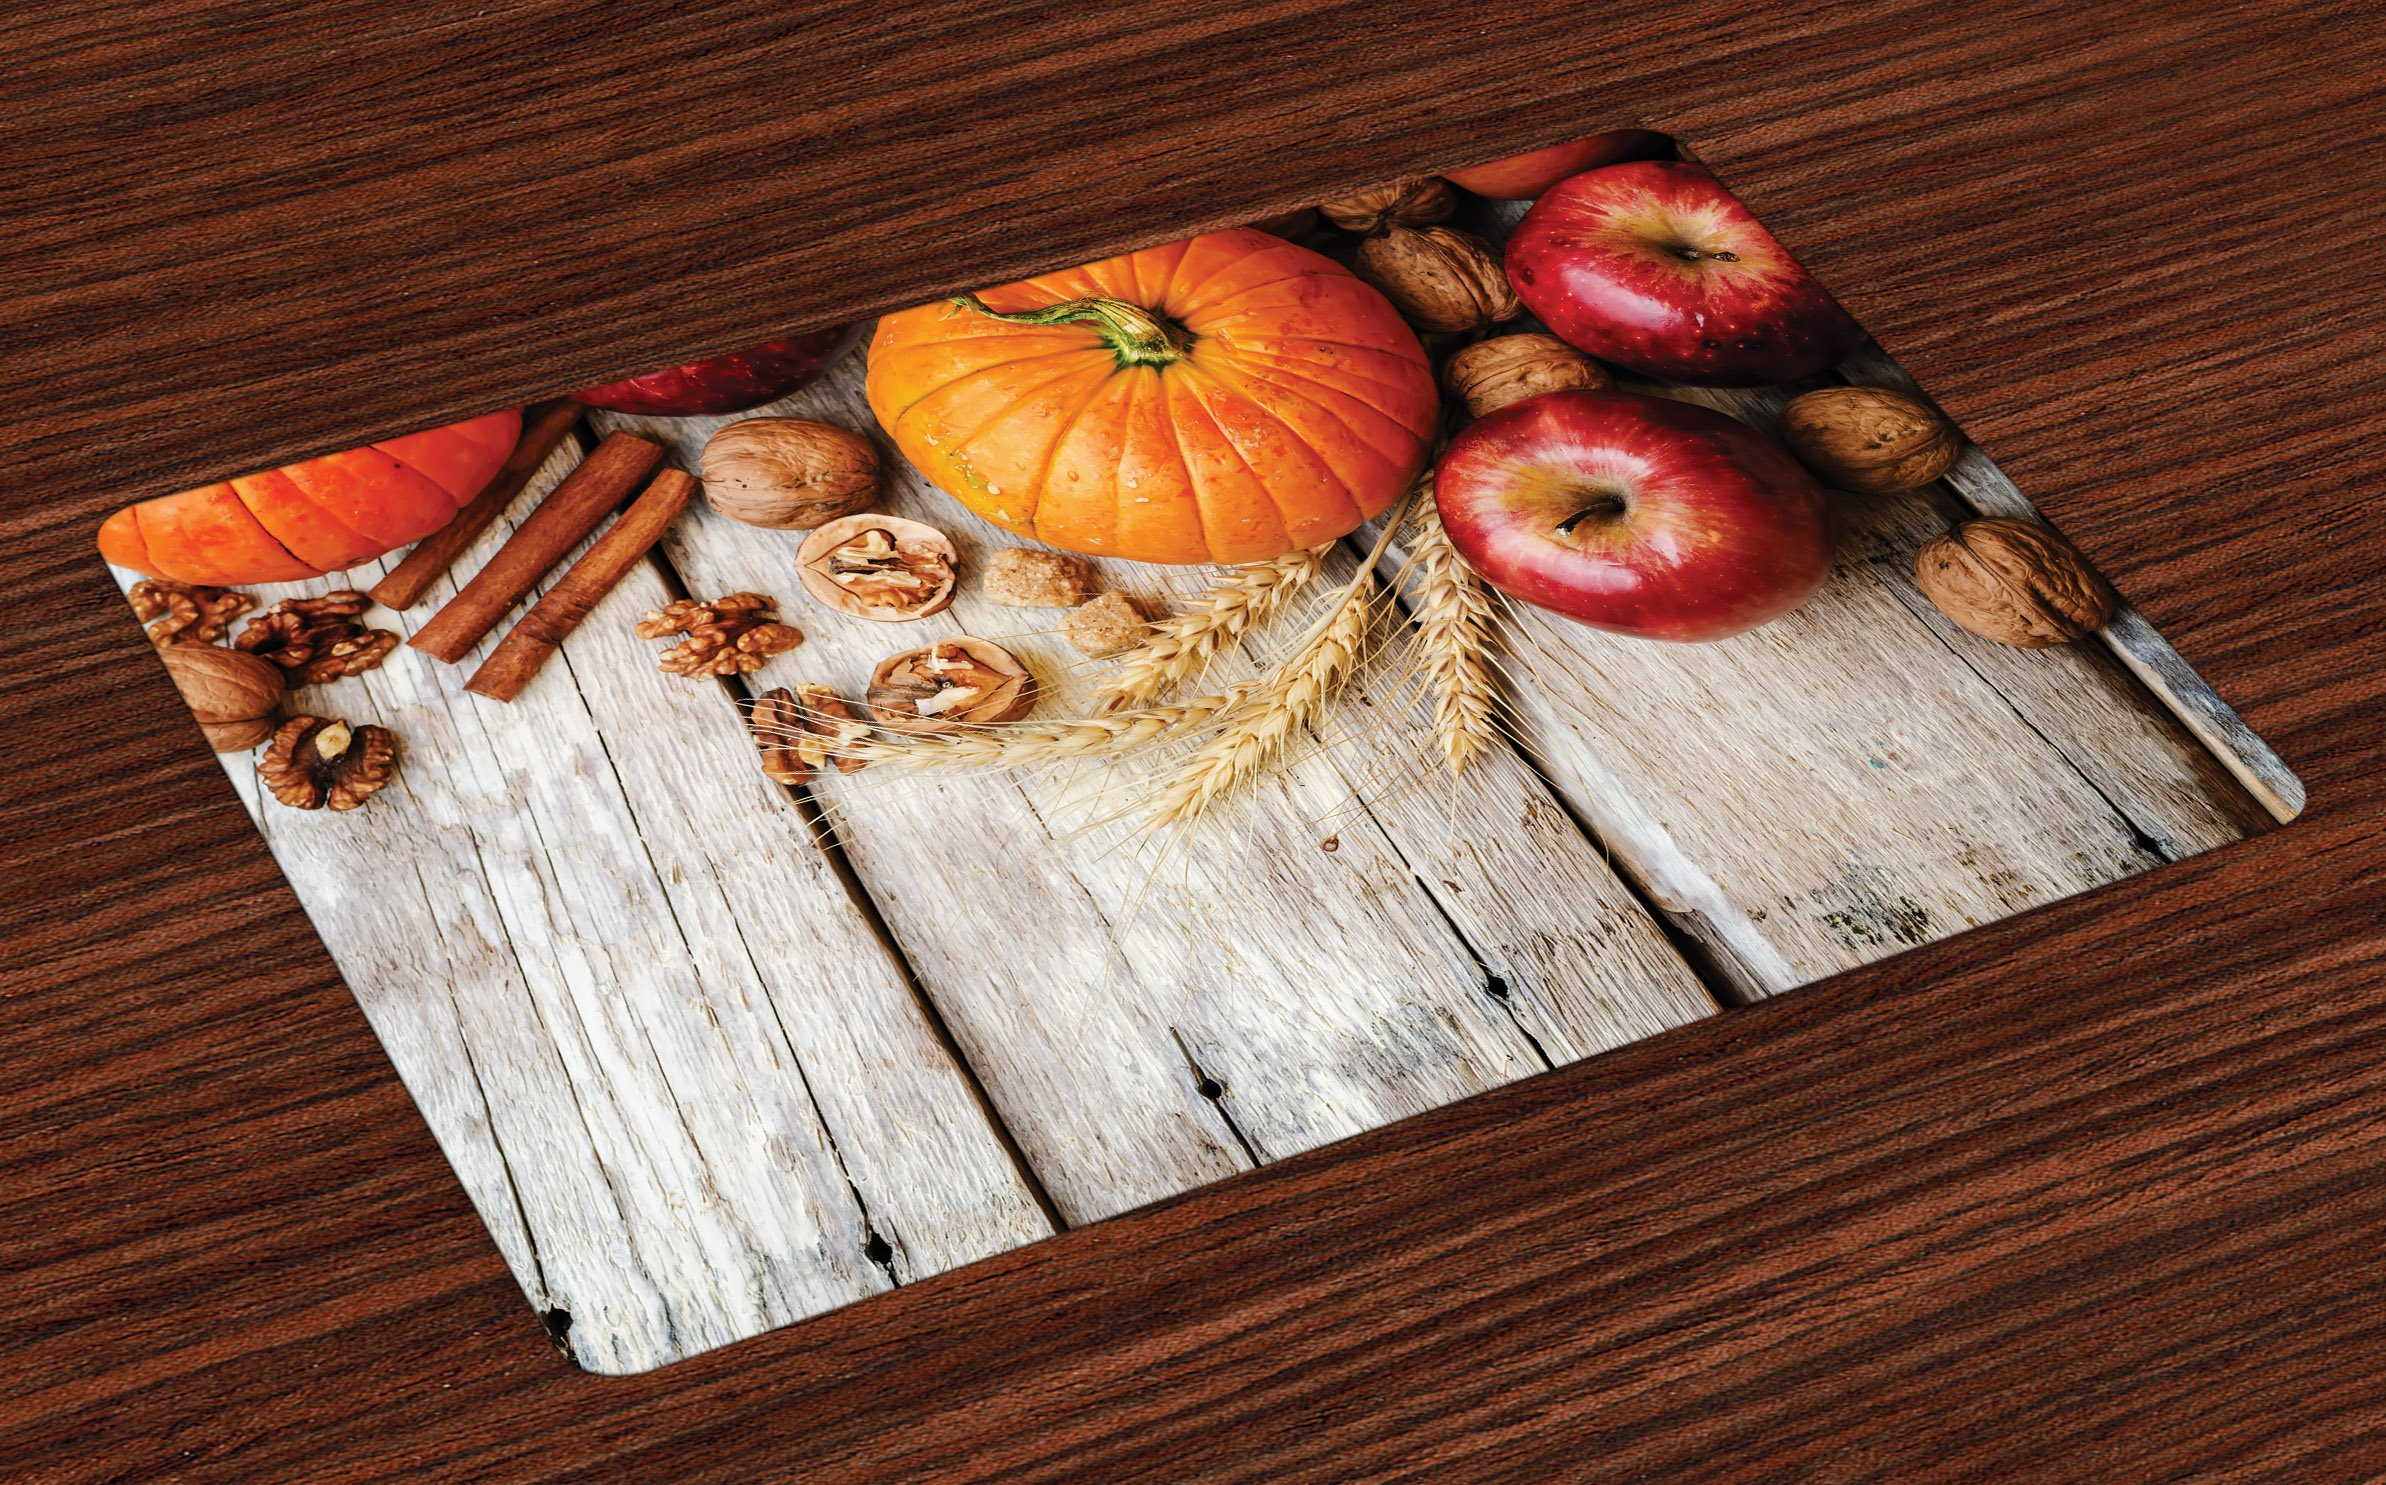 Lunarable Fruits Place Mats Set of 4, Wood Background with Pumpkin Apples Wheat Honey Nuts Farmhouse Rural, Washable Fabric Placemats for Dining Room Kitchen Table Decoration, Pale Brown Orange Red